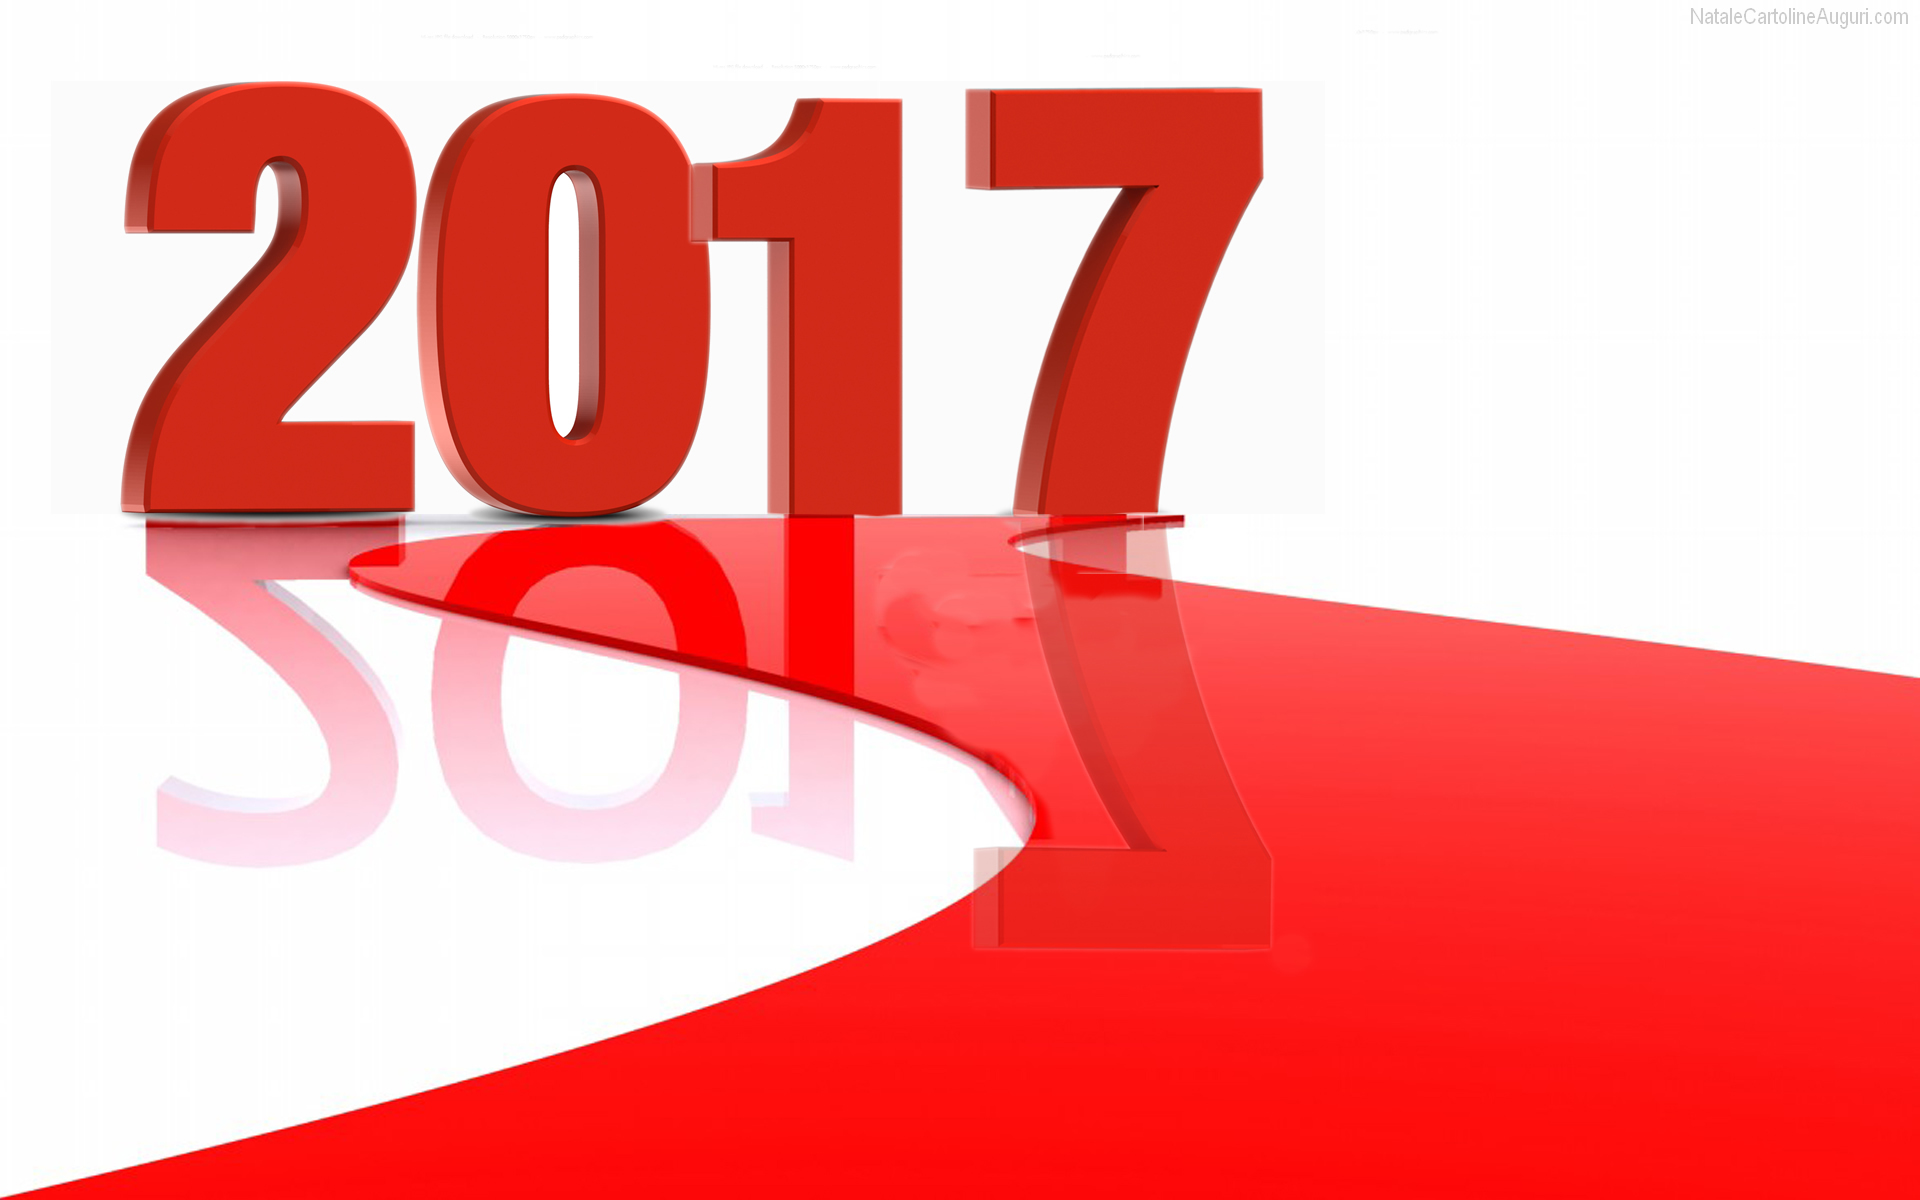 2017 New Year Png - 2017 Happy New Year Celebration #28826 - Free Icons and PNG ...